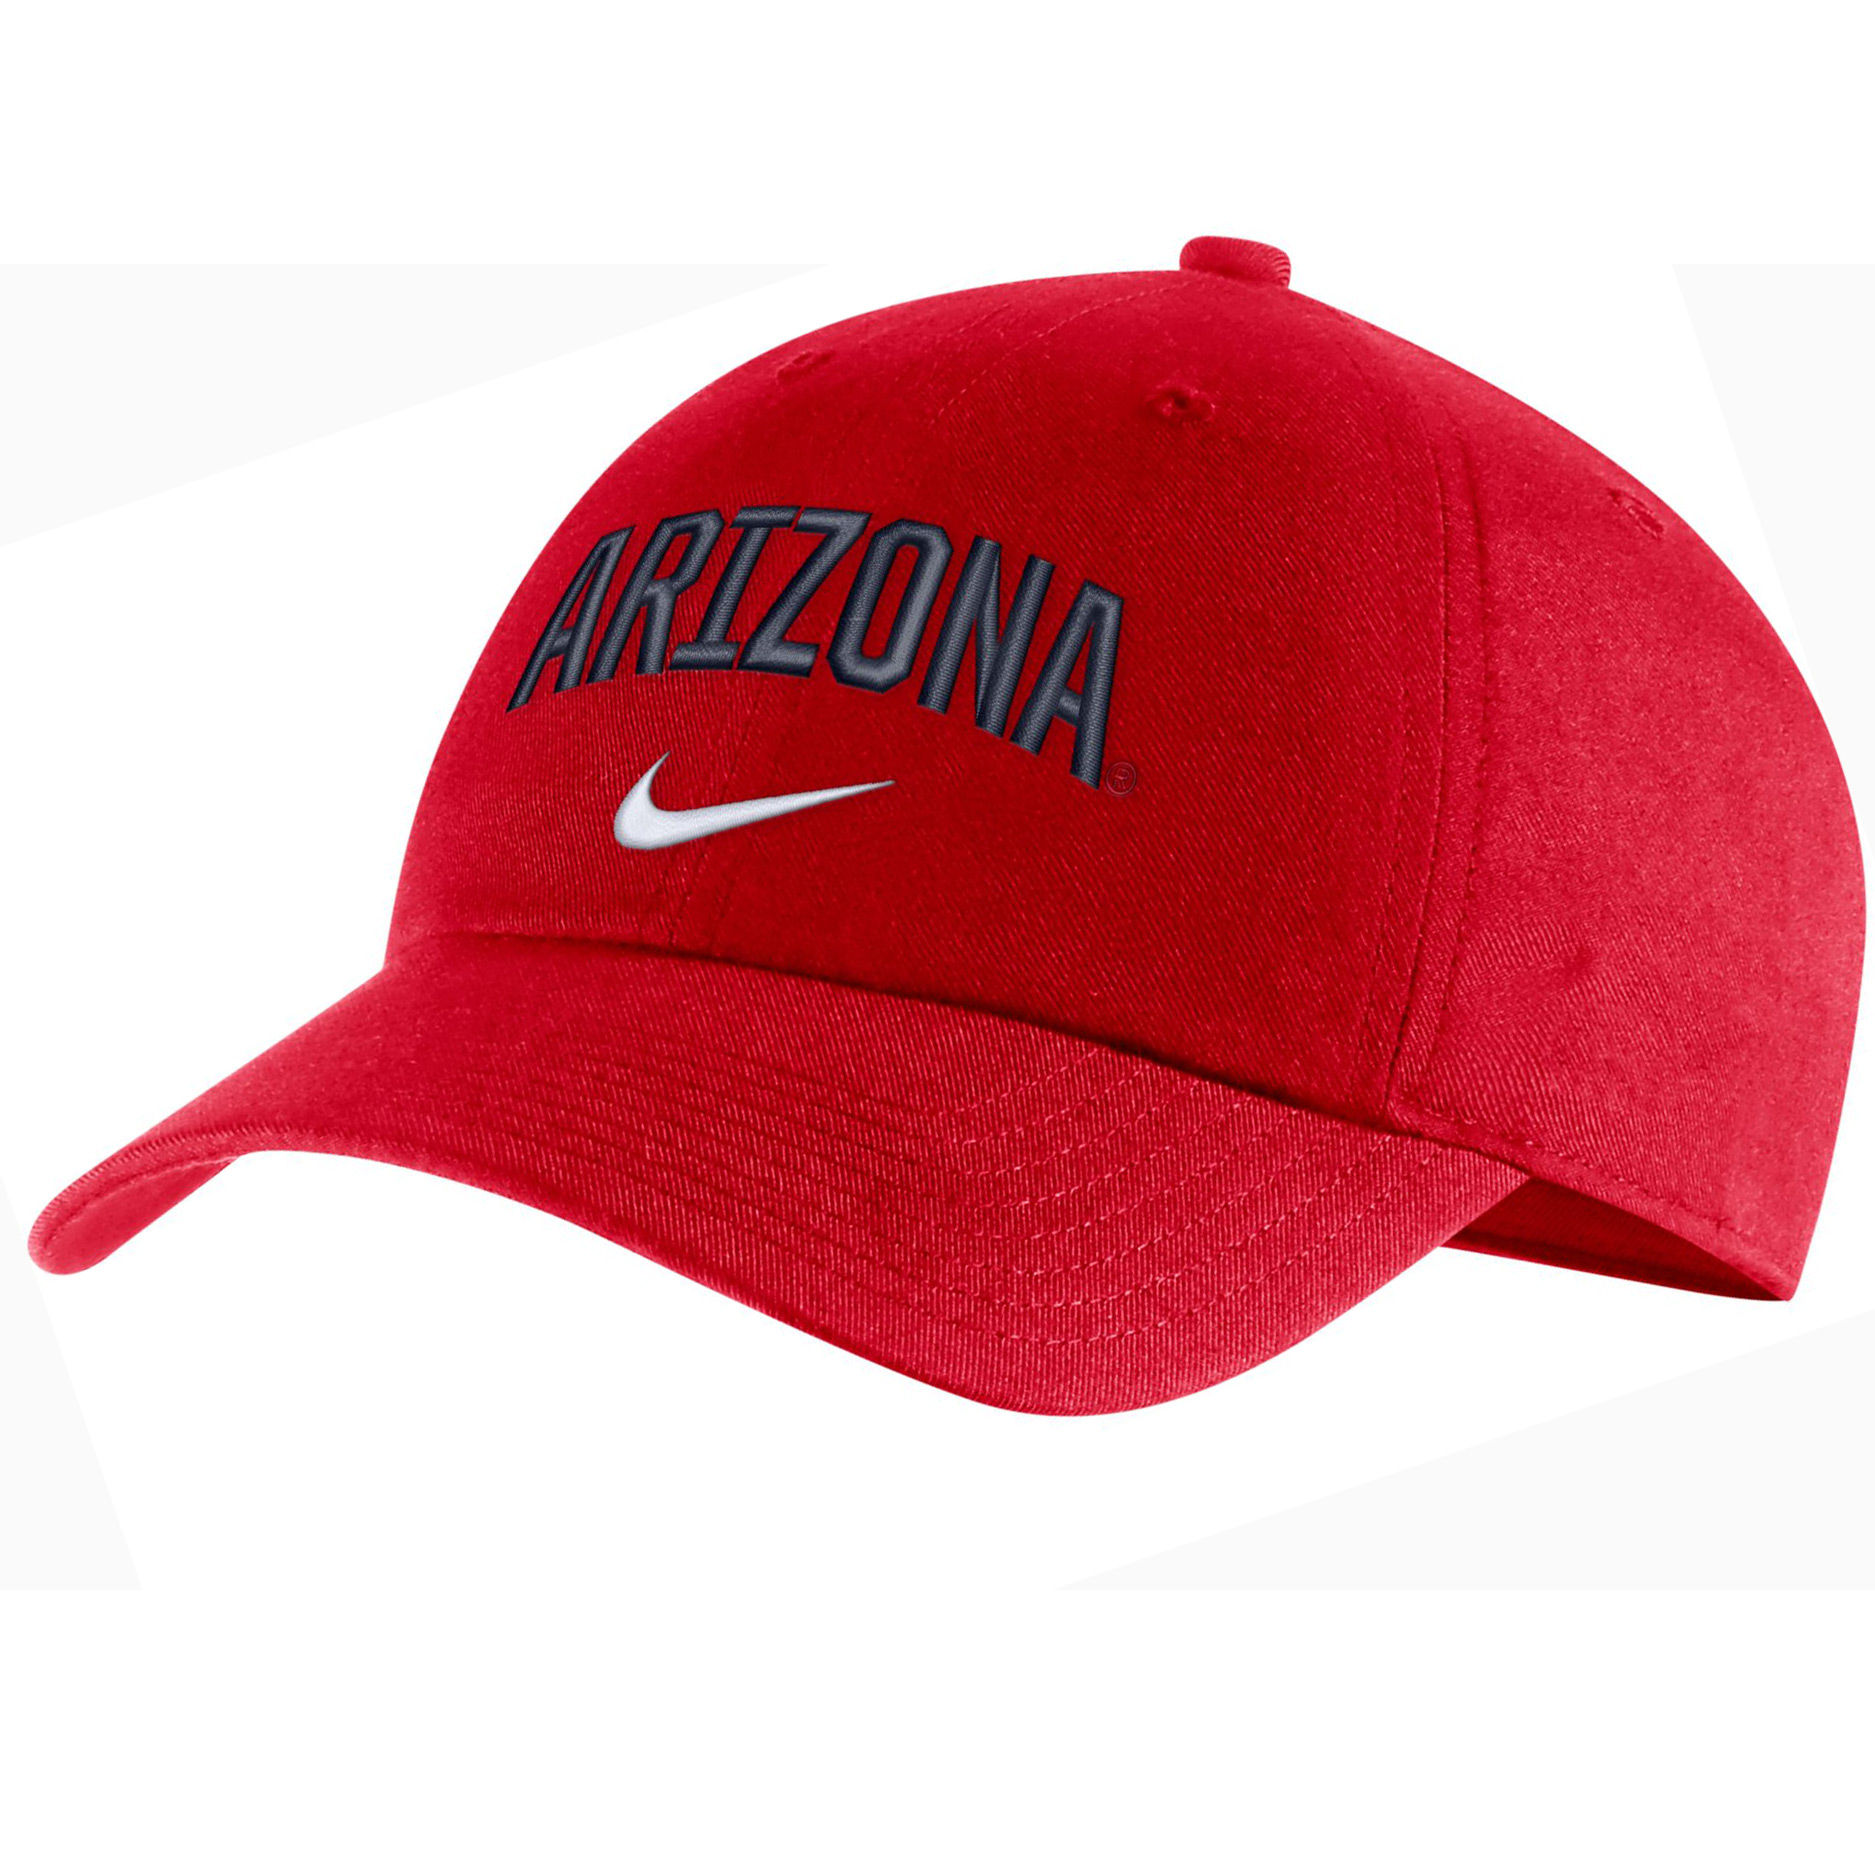 Arizona Red Heritage 86 Swoosh Cap